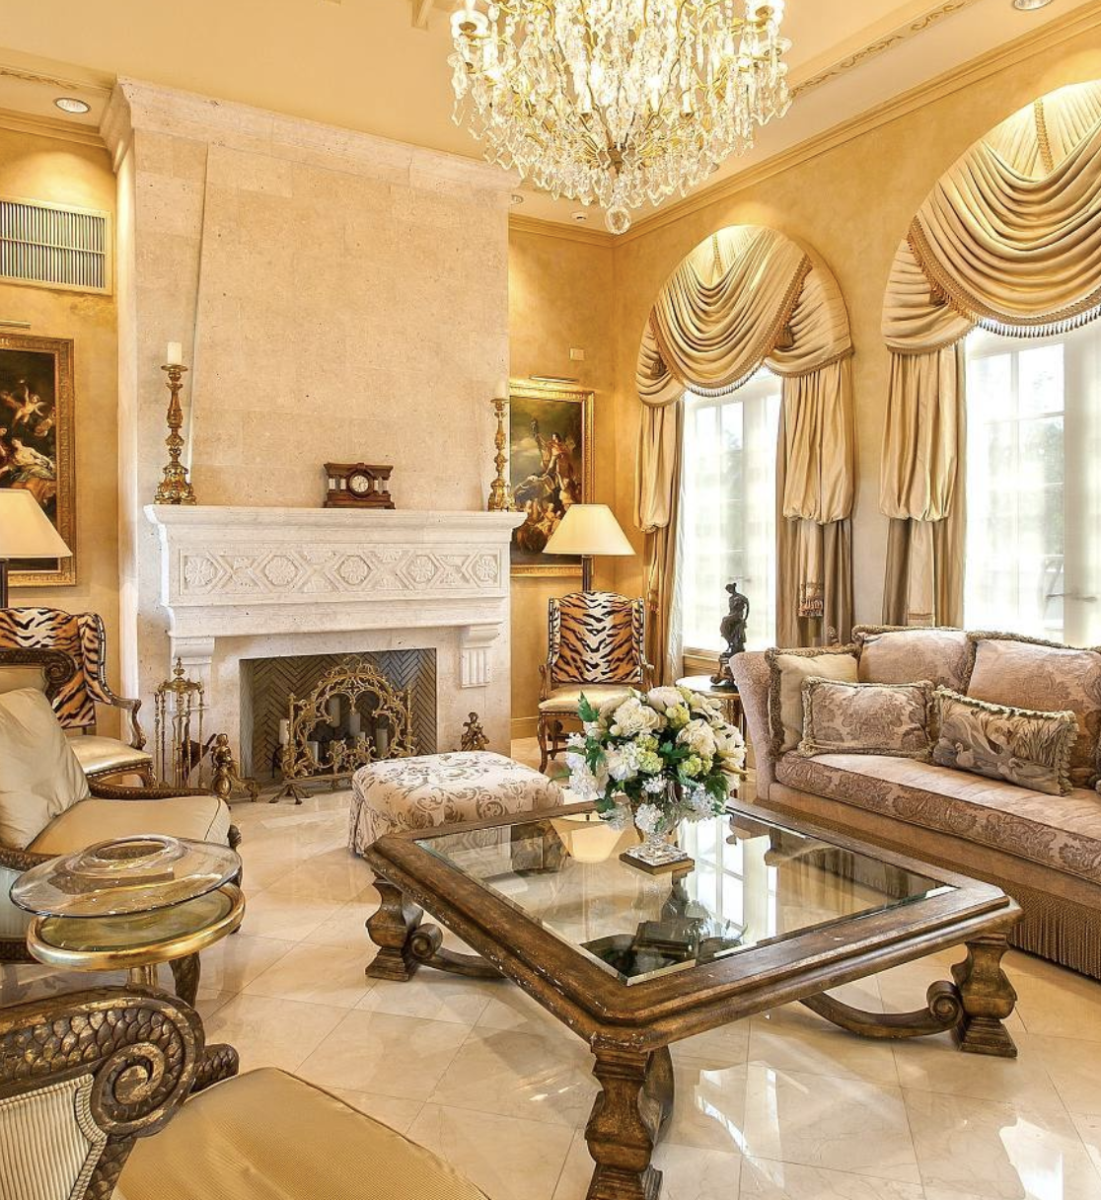 There's A Multimillion-Dollar Trump Mansion For Sale, And People Have Ethics Questions 5